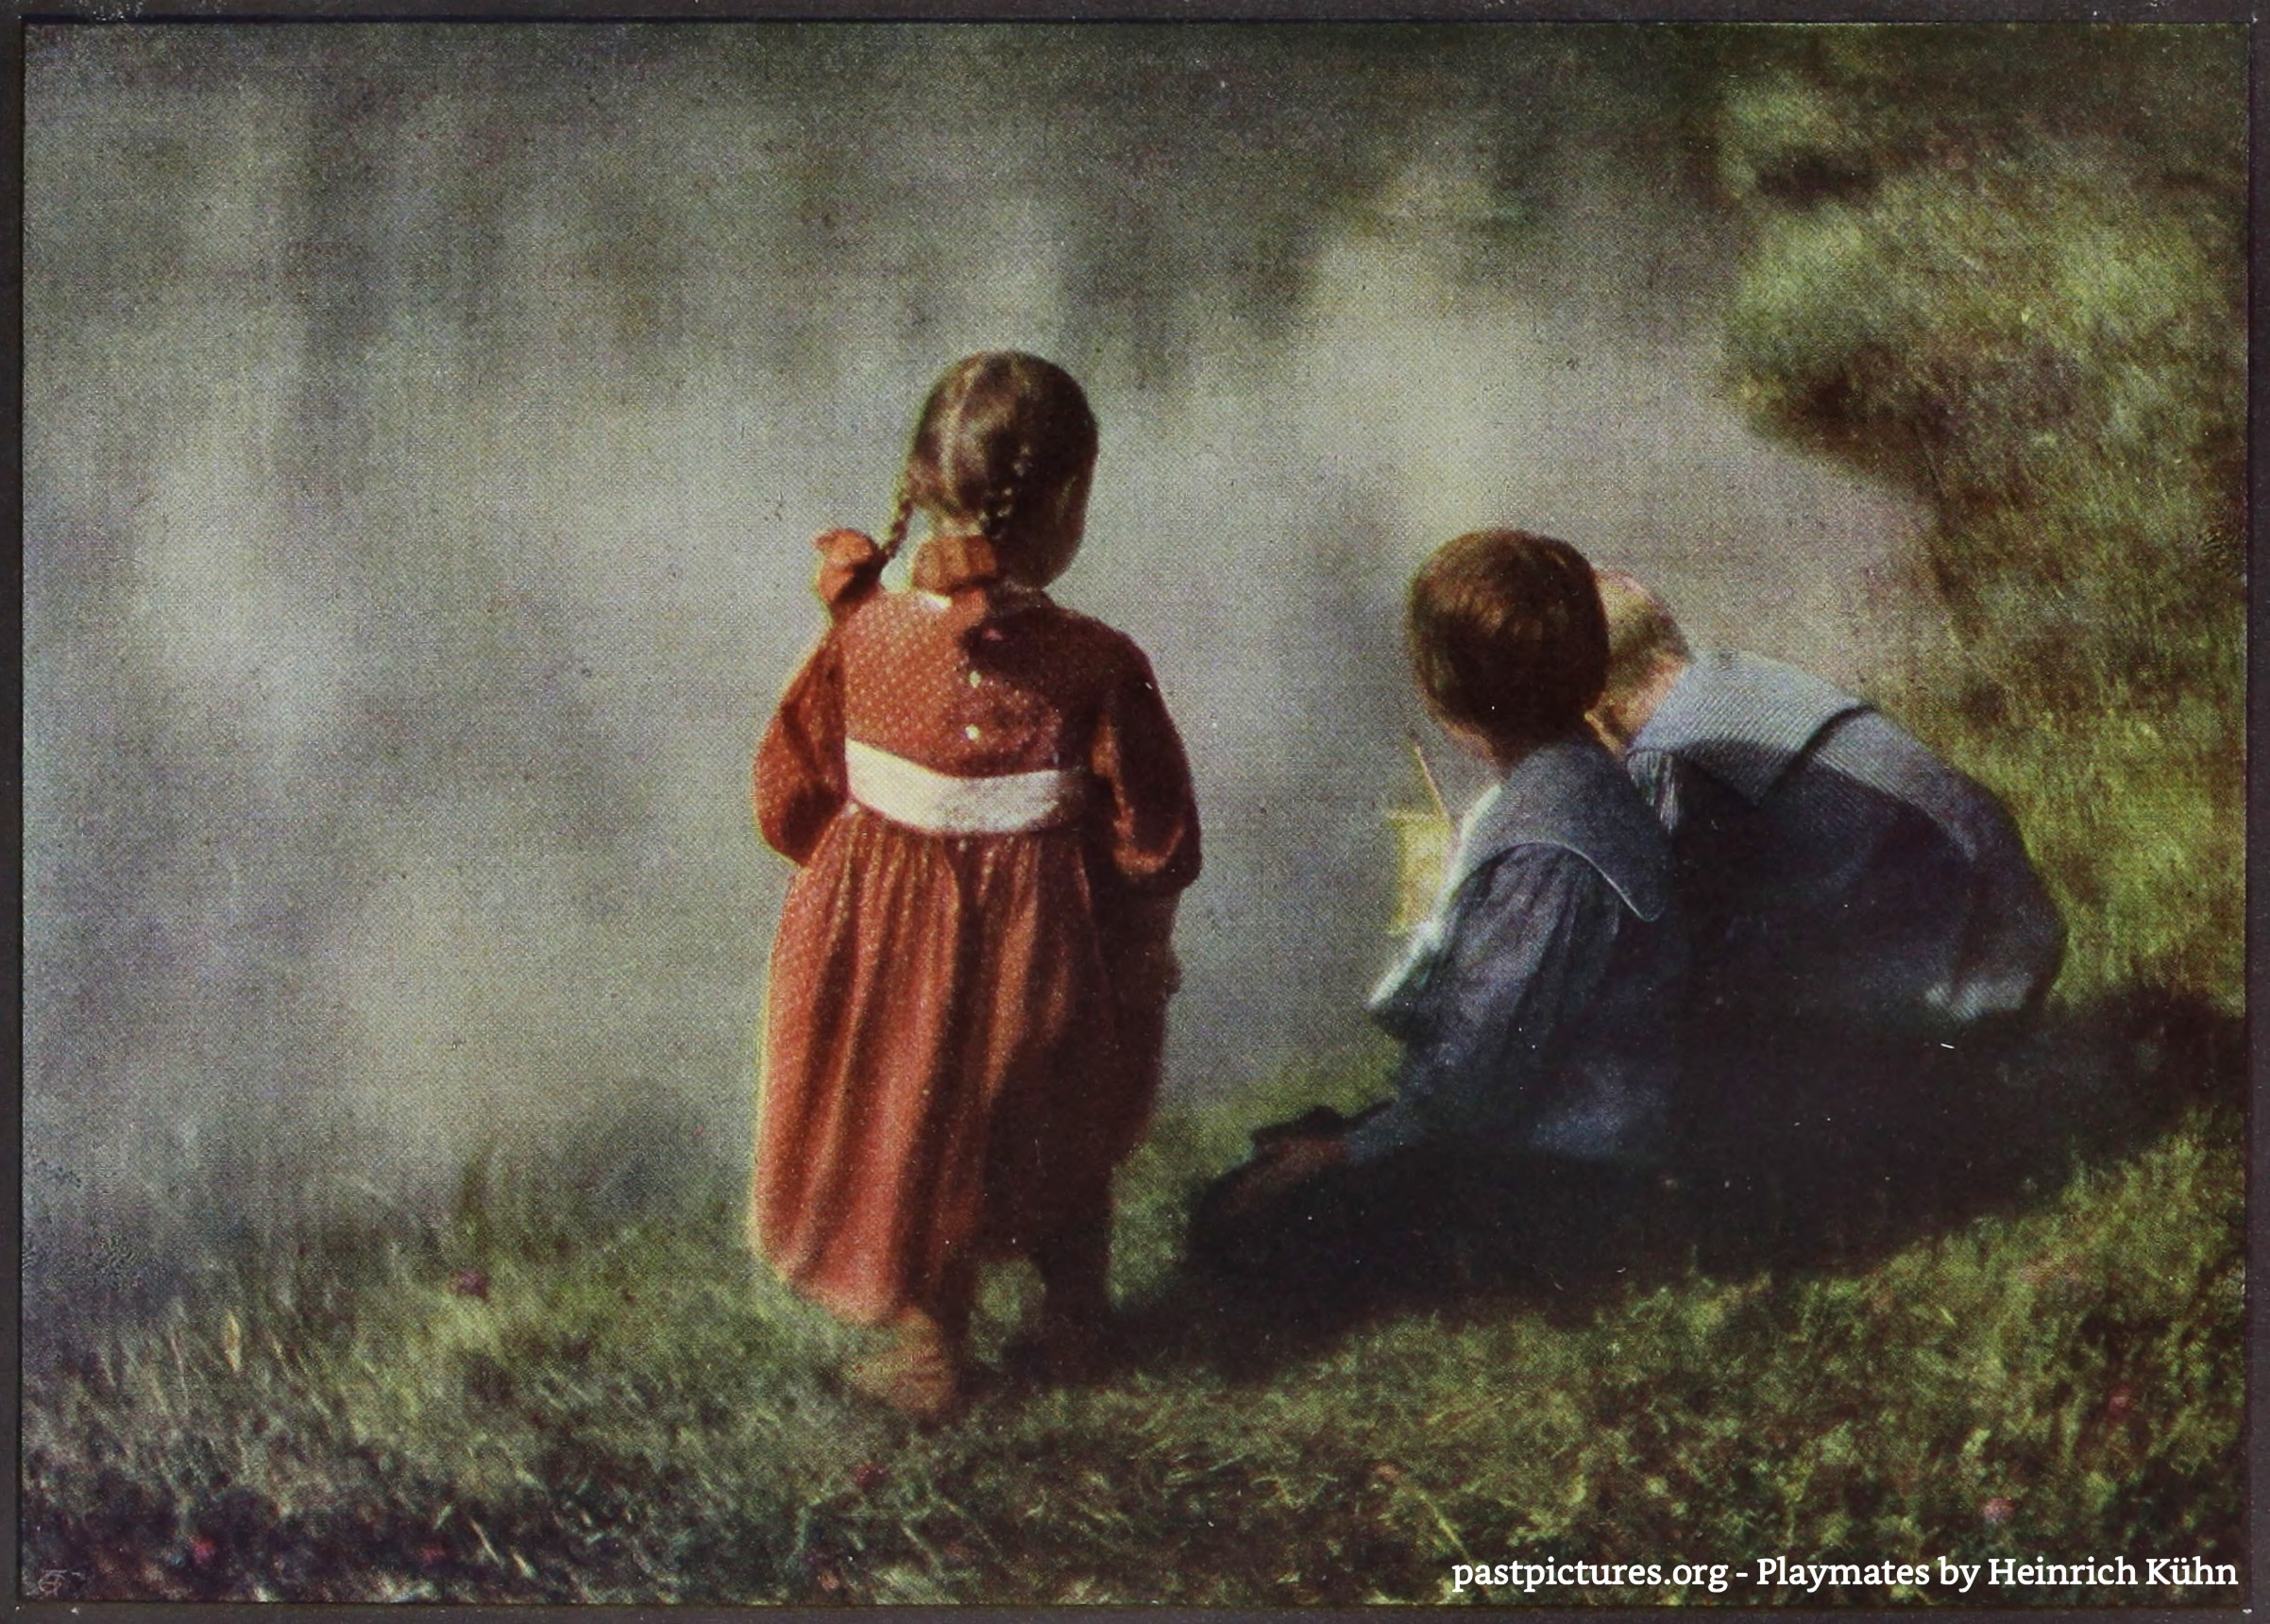 Playmates by Heinrich Kühn 1907